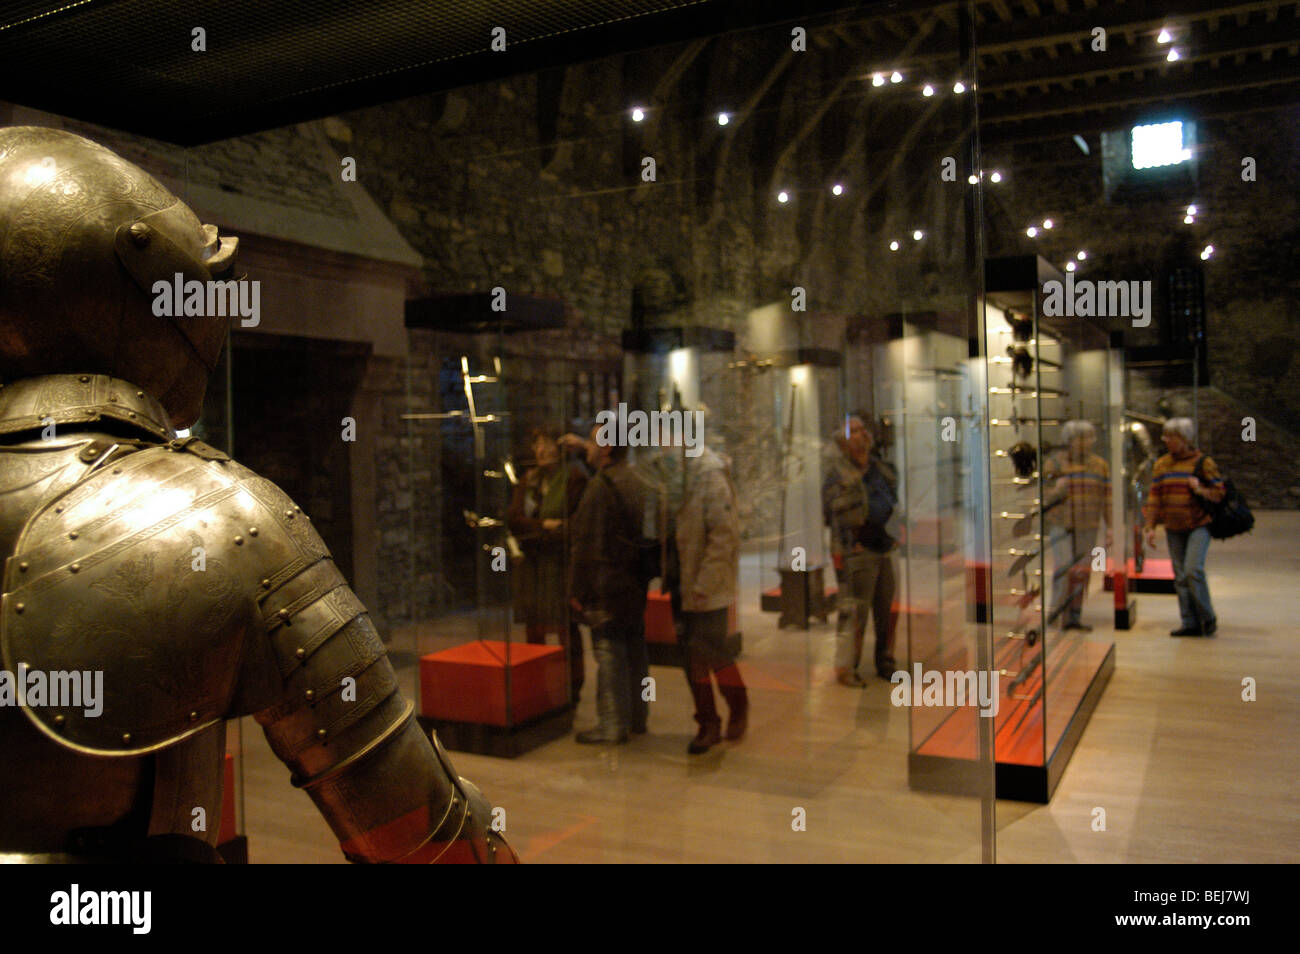 Tourists visiting the mediaeval armoury at the Gravensteen / Castle of the Counts in Ghent, Belgium - Stock Image